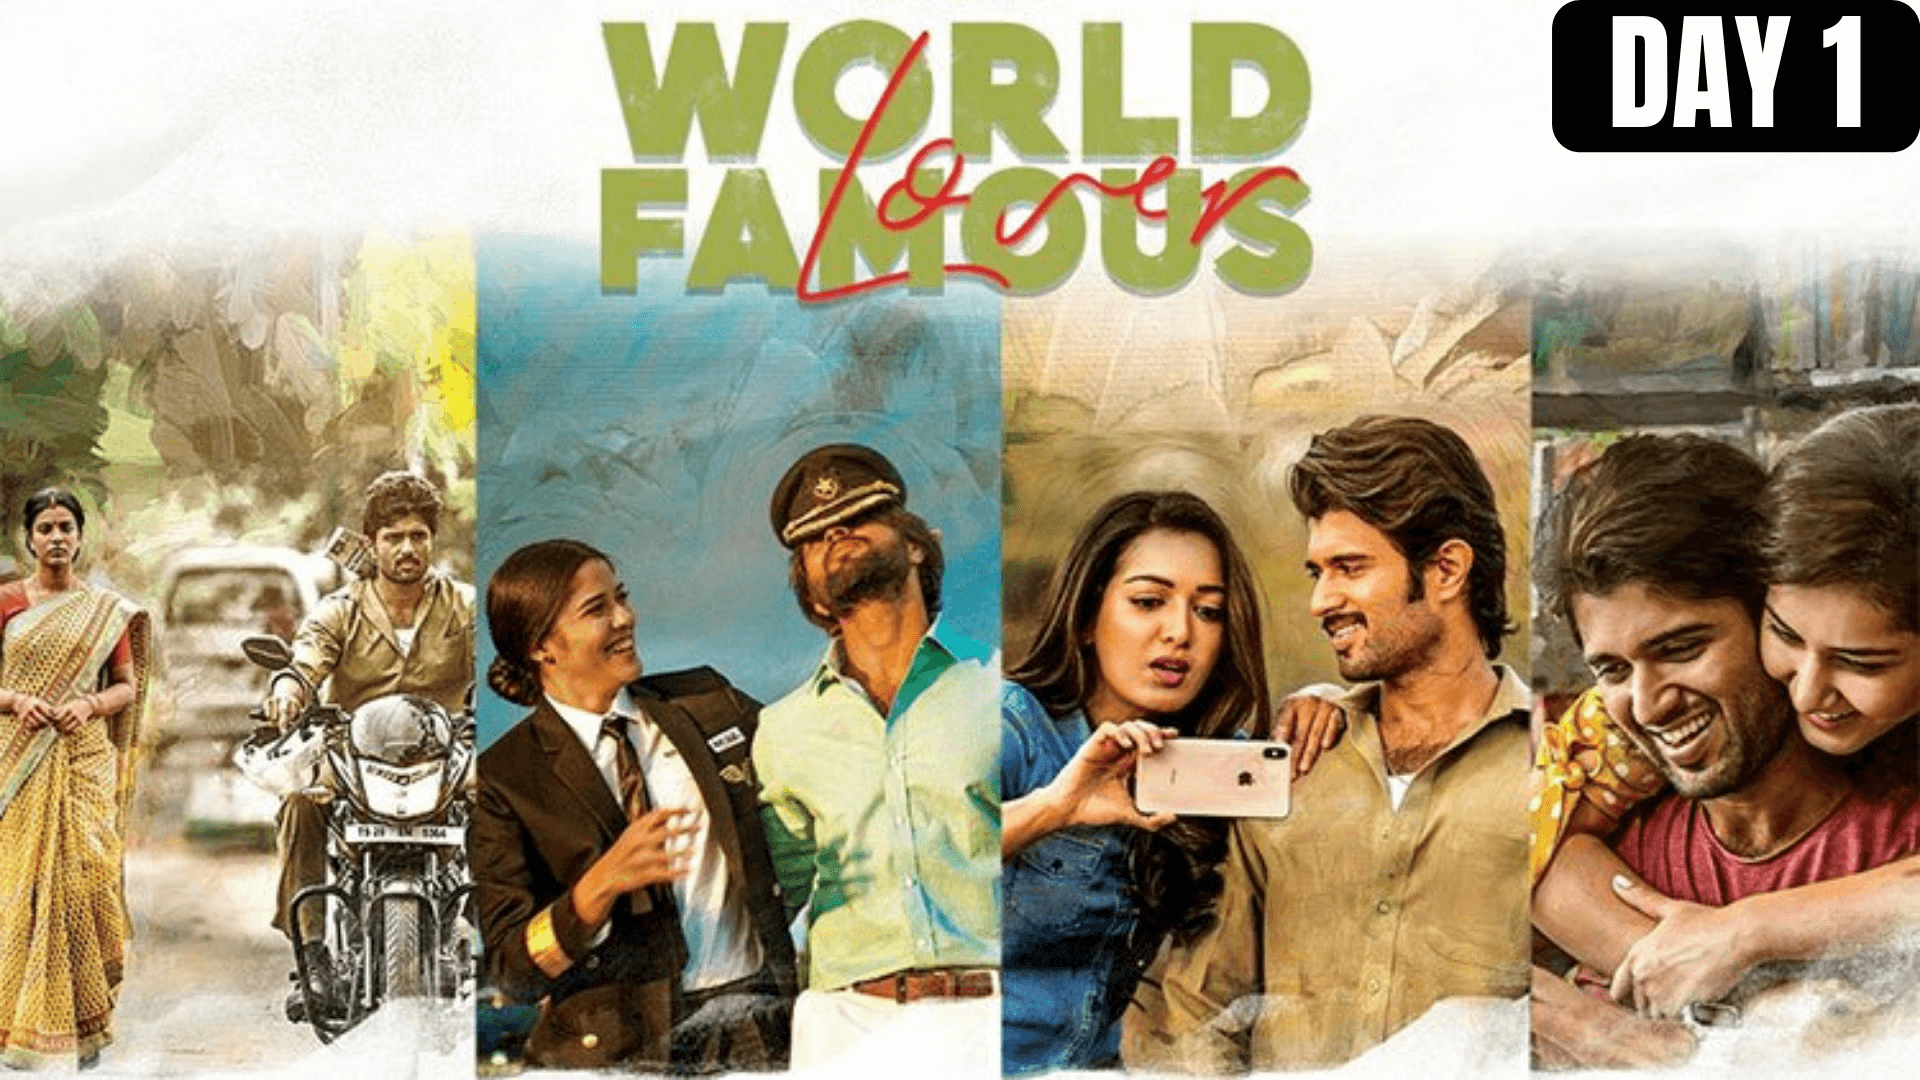 World Famous Lover Day 1 Collection – World Famous Lover 1st Day Collections at Box Office | Vijay Deverakonda, Raashi Khanna